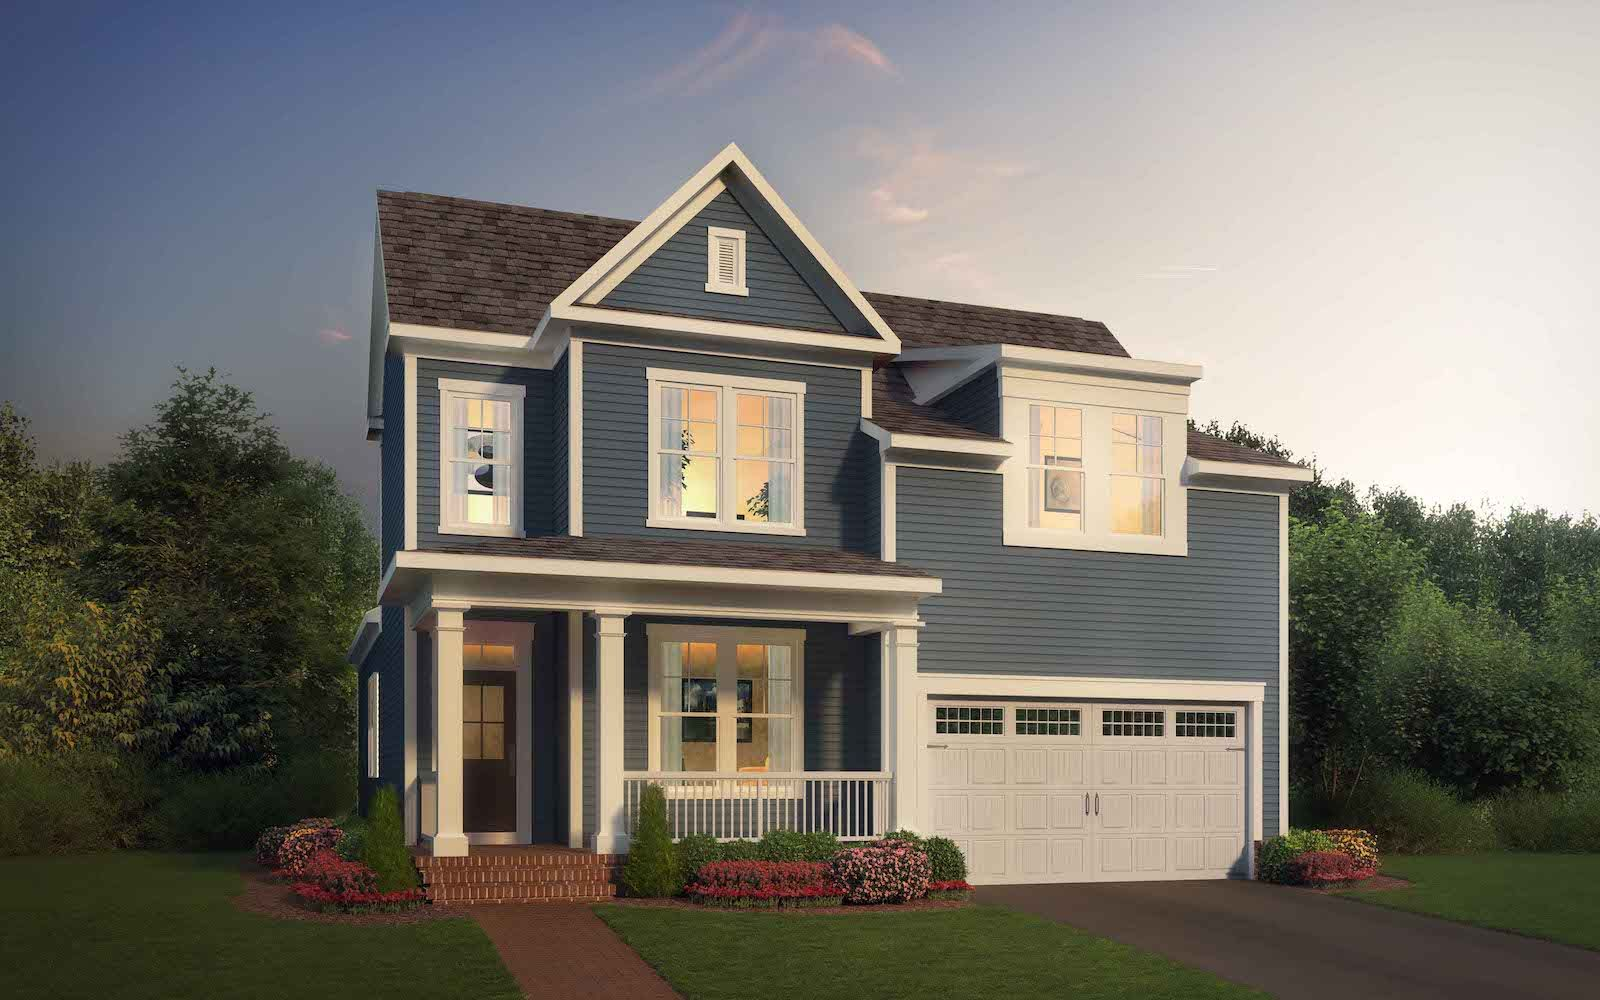 Exterior:Elevation 1 of the Torrington a home design by Brookfield Residential at Potomac Shores